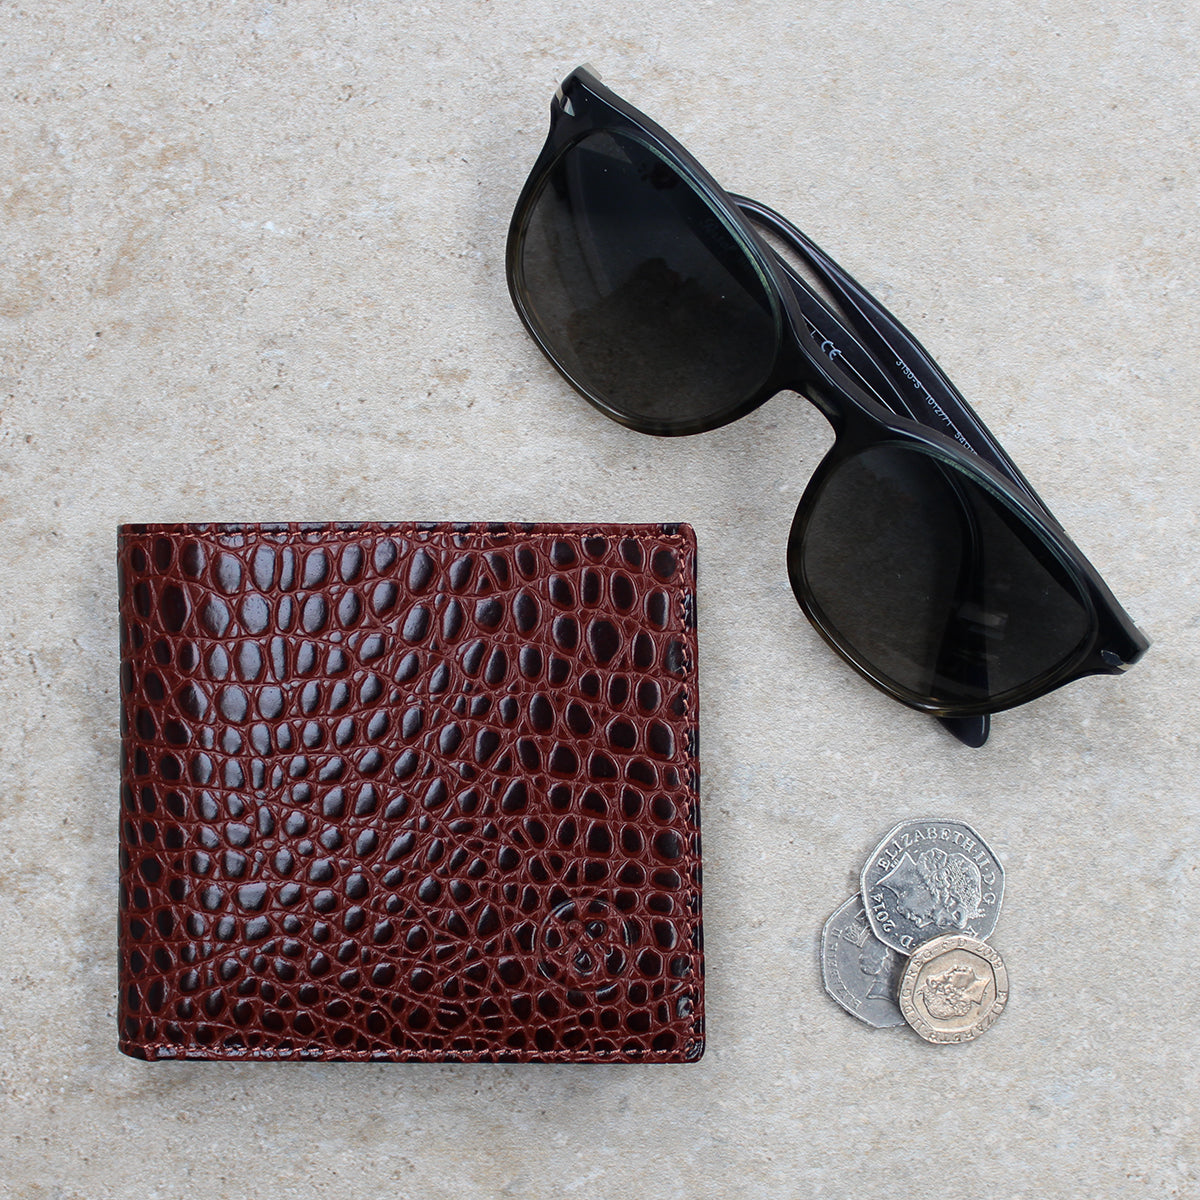 Image 8 of the 'Ticciano' Mock Croc Chestnut Veg-Tanned Leather Wallet with Coin Pocket